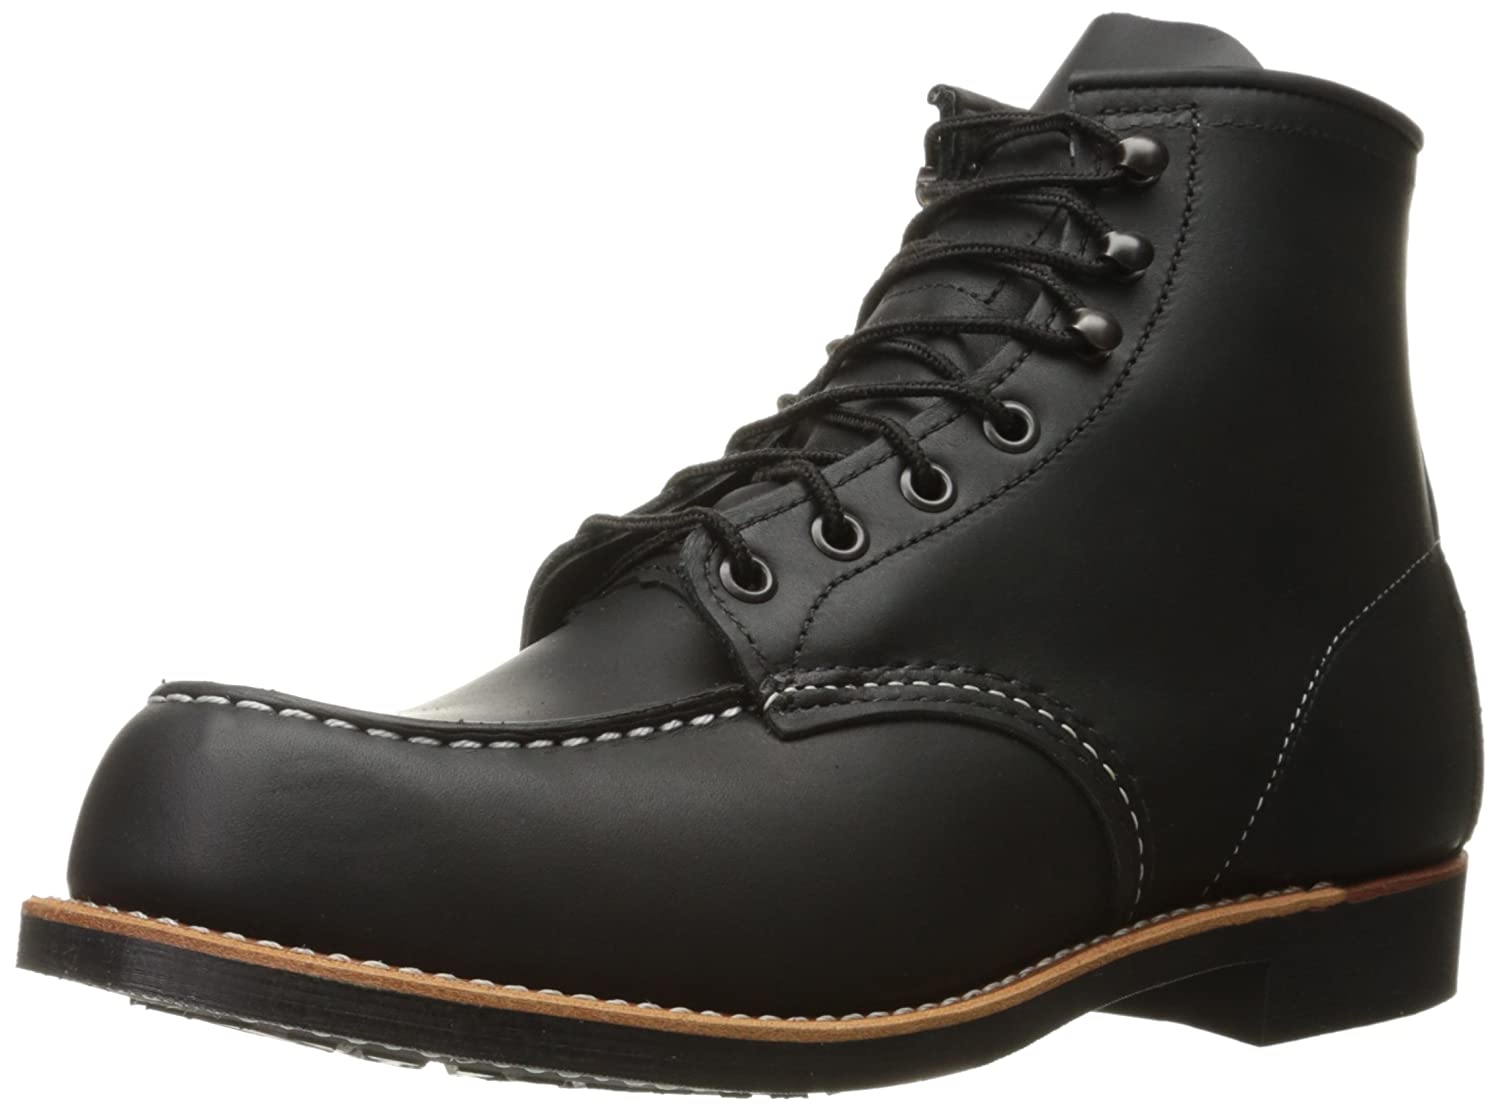 Red Wing Shoes - Botas Chukka Hombre 41.5 EU|Schwarz (Black Harness)